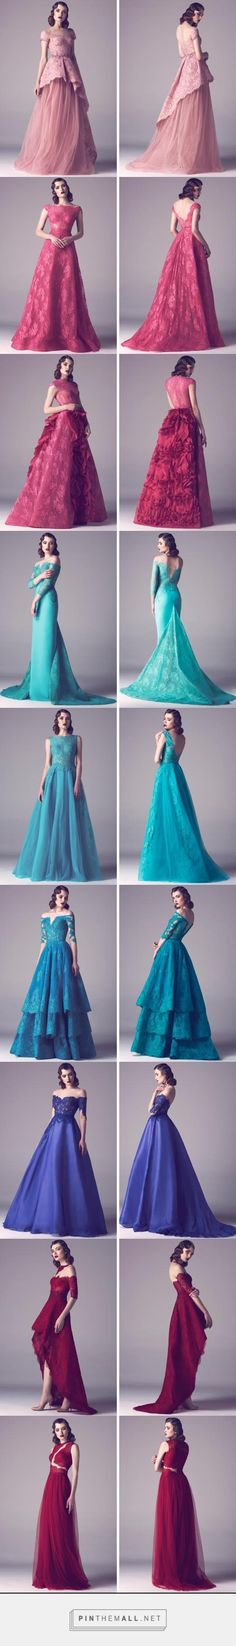 Fadwa Baalbaki Spring 2015 Collection